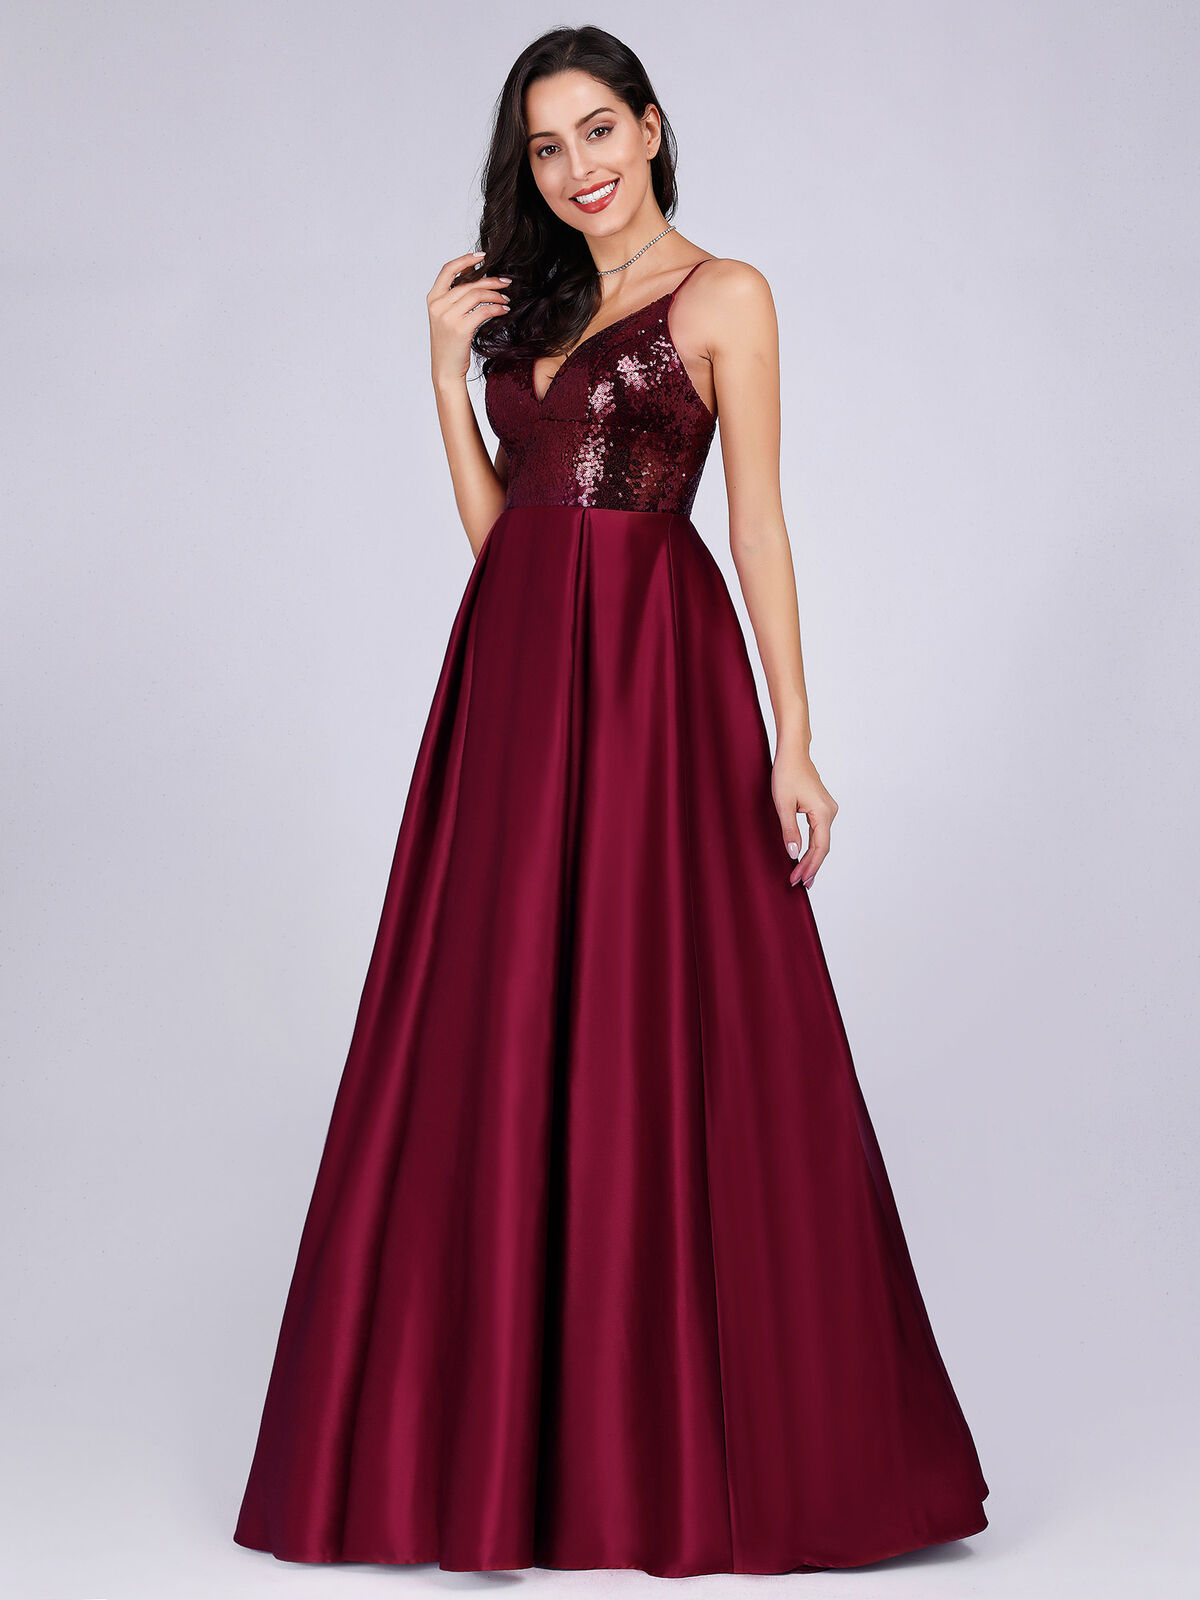 AliExpress 2019 New Style Hot Selling Banquet Wine Long Europe And America Sequin Backless Sexy Evening